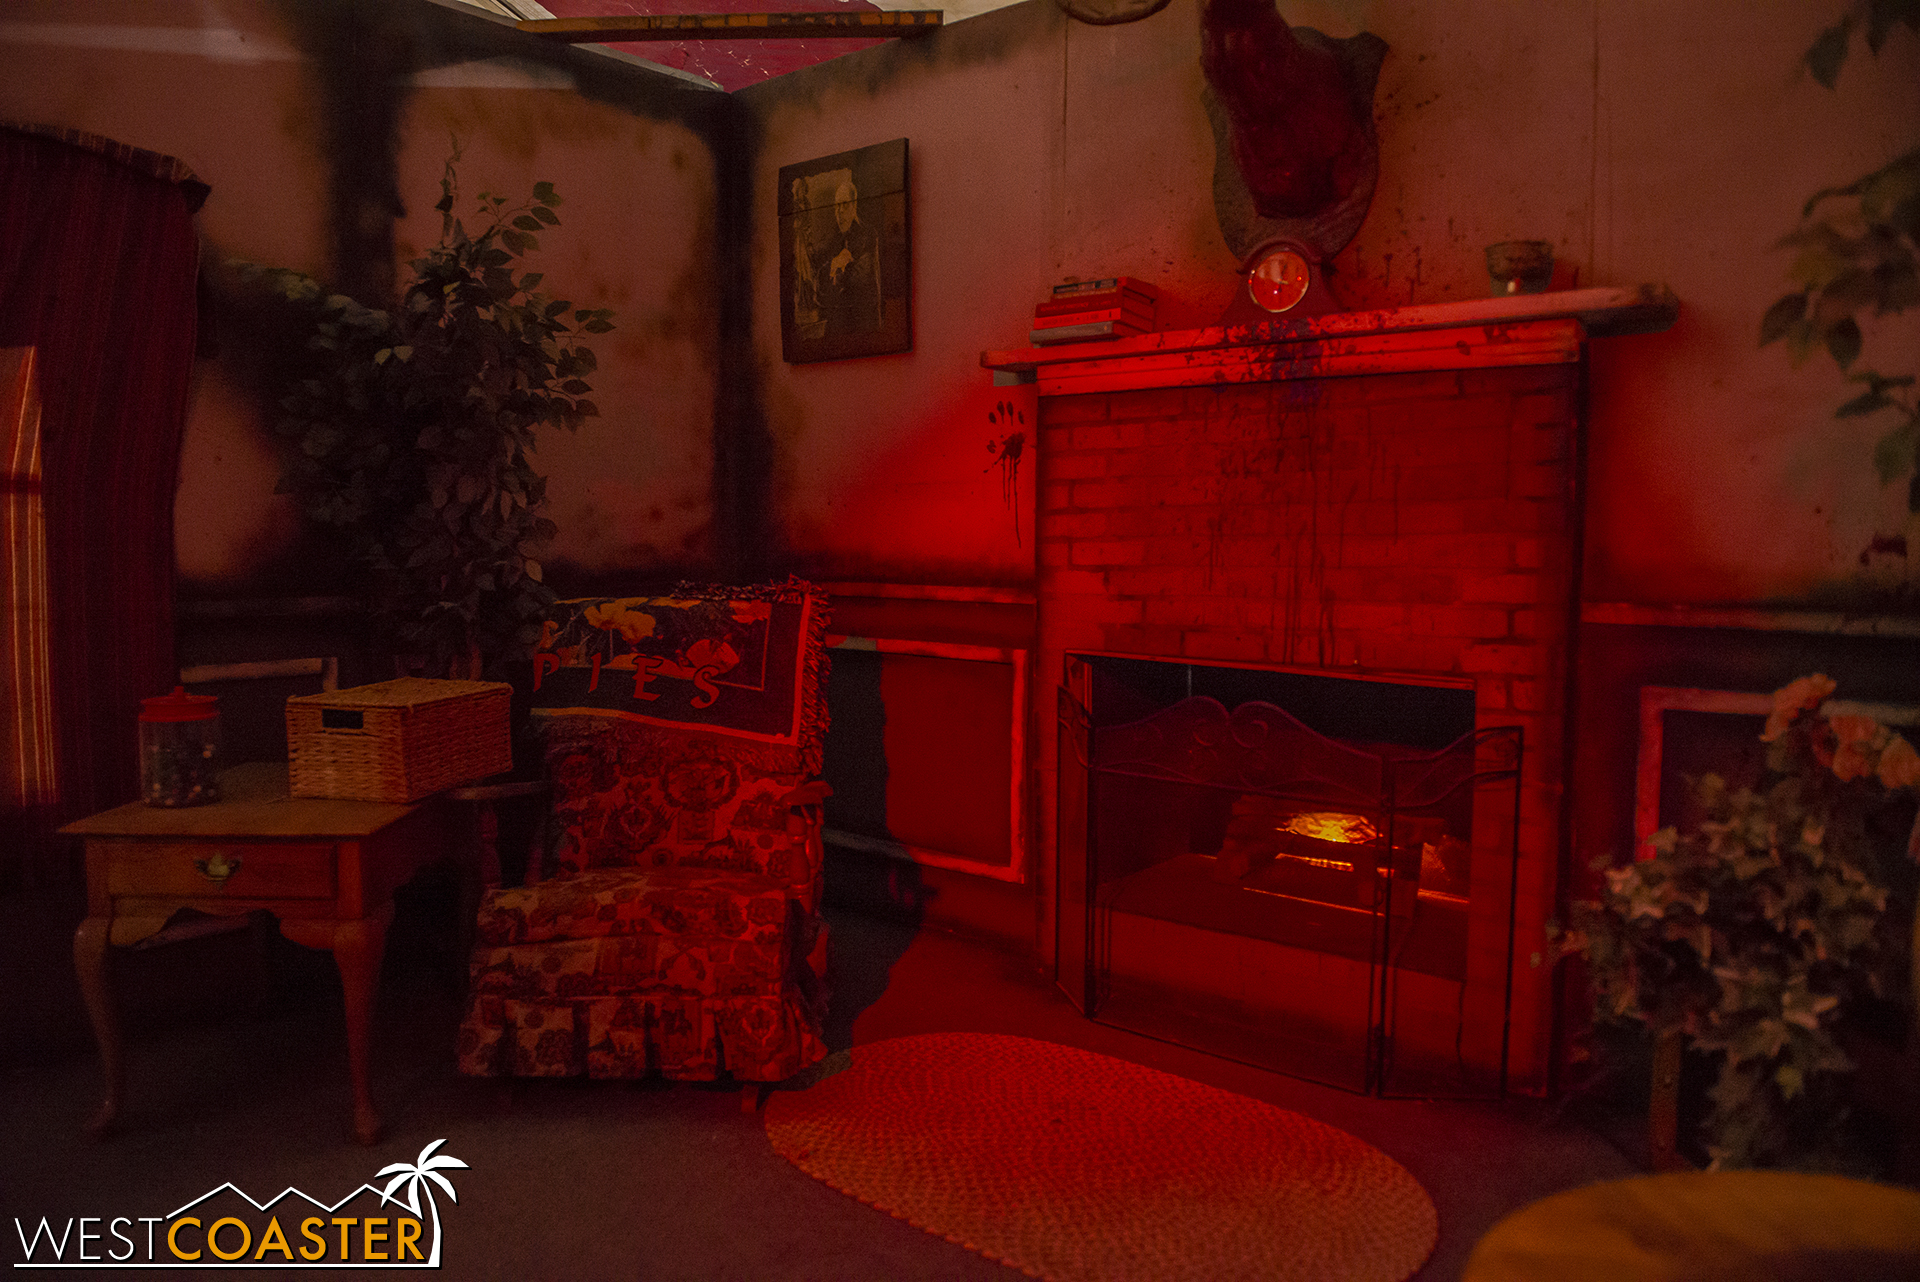 Guests enter the living room for a quick photo before continuing on through the maze.